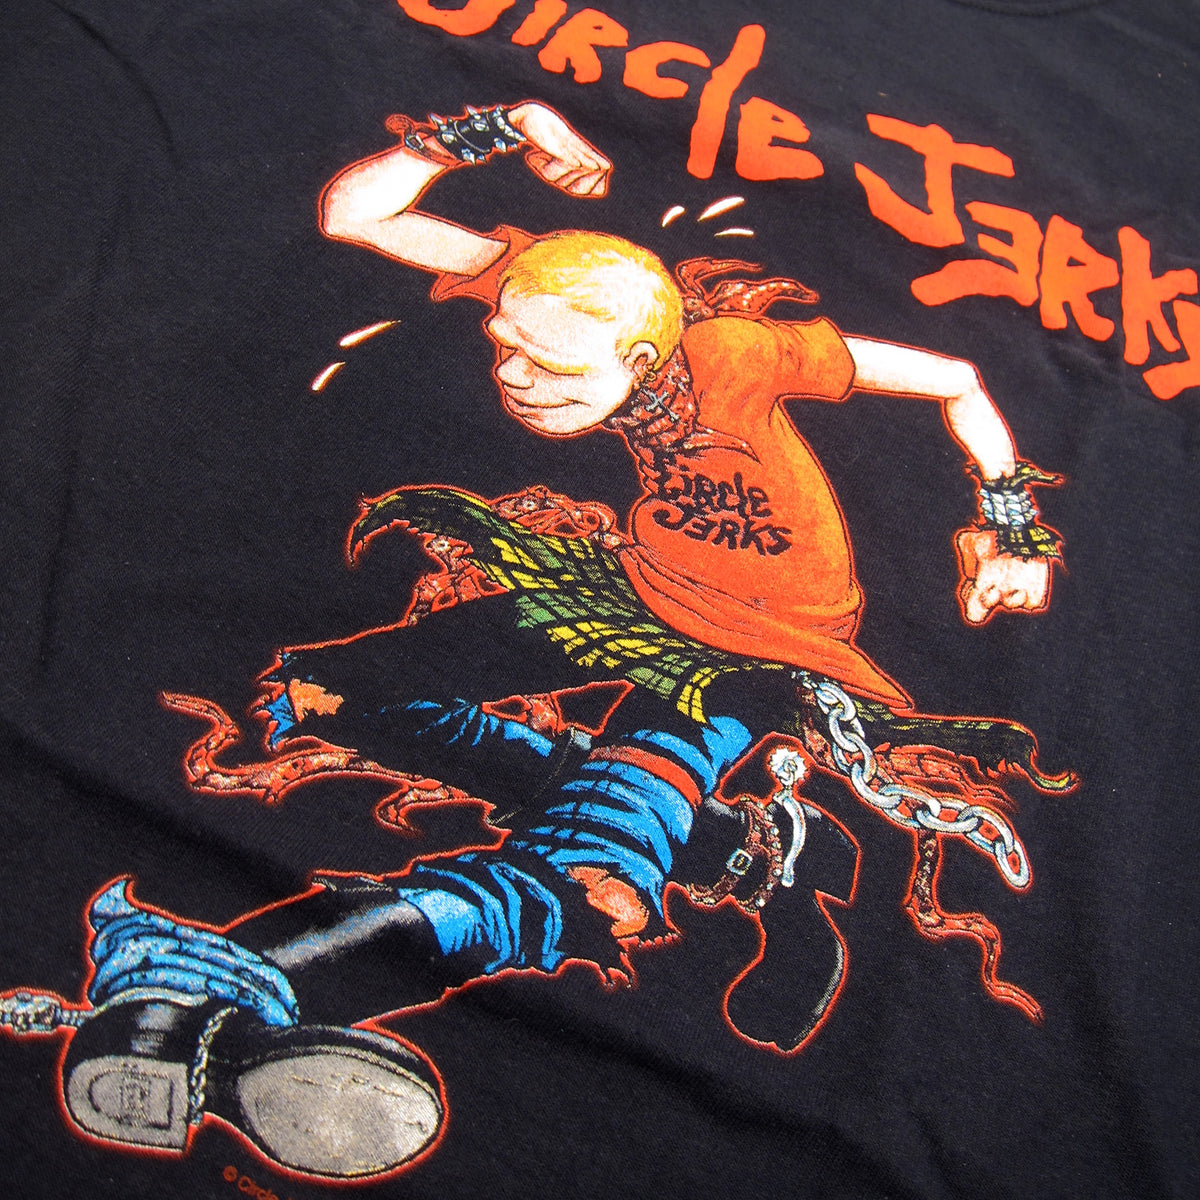 Circle Jerks: Skank Man Shirt - Black